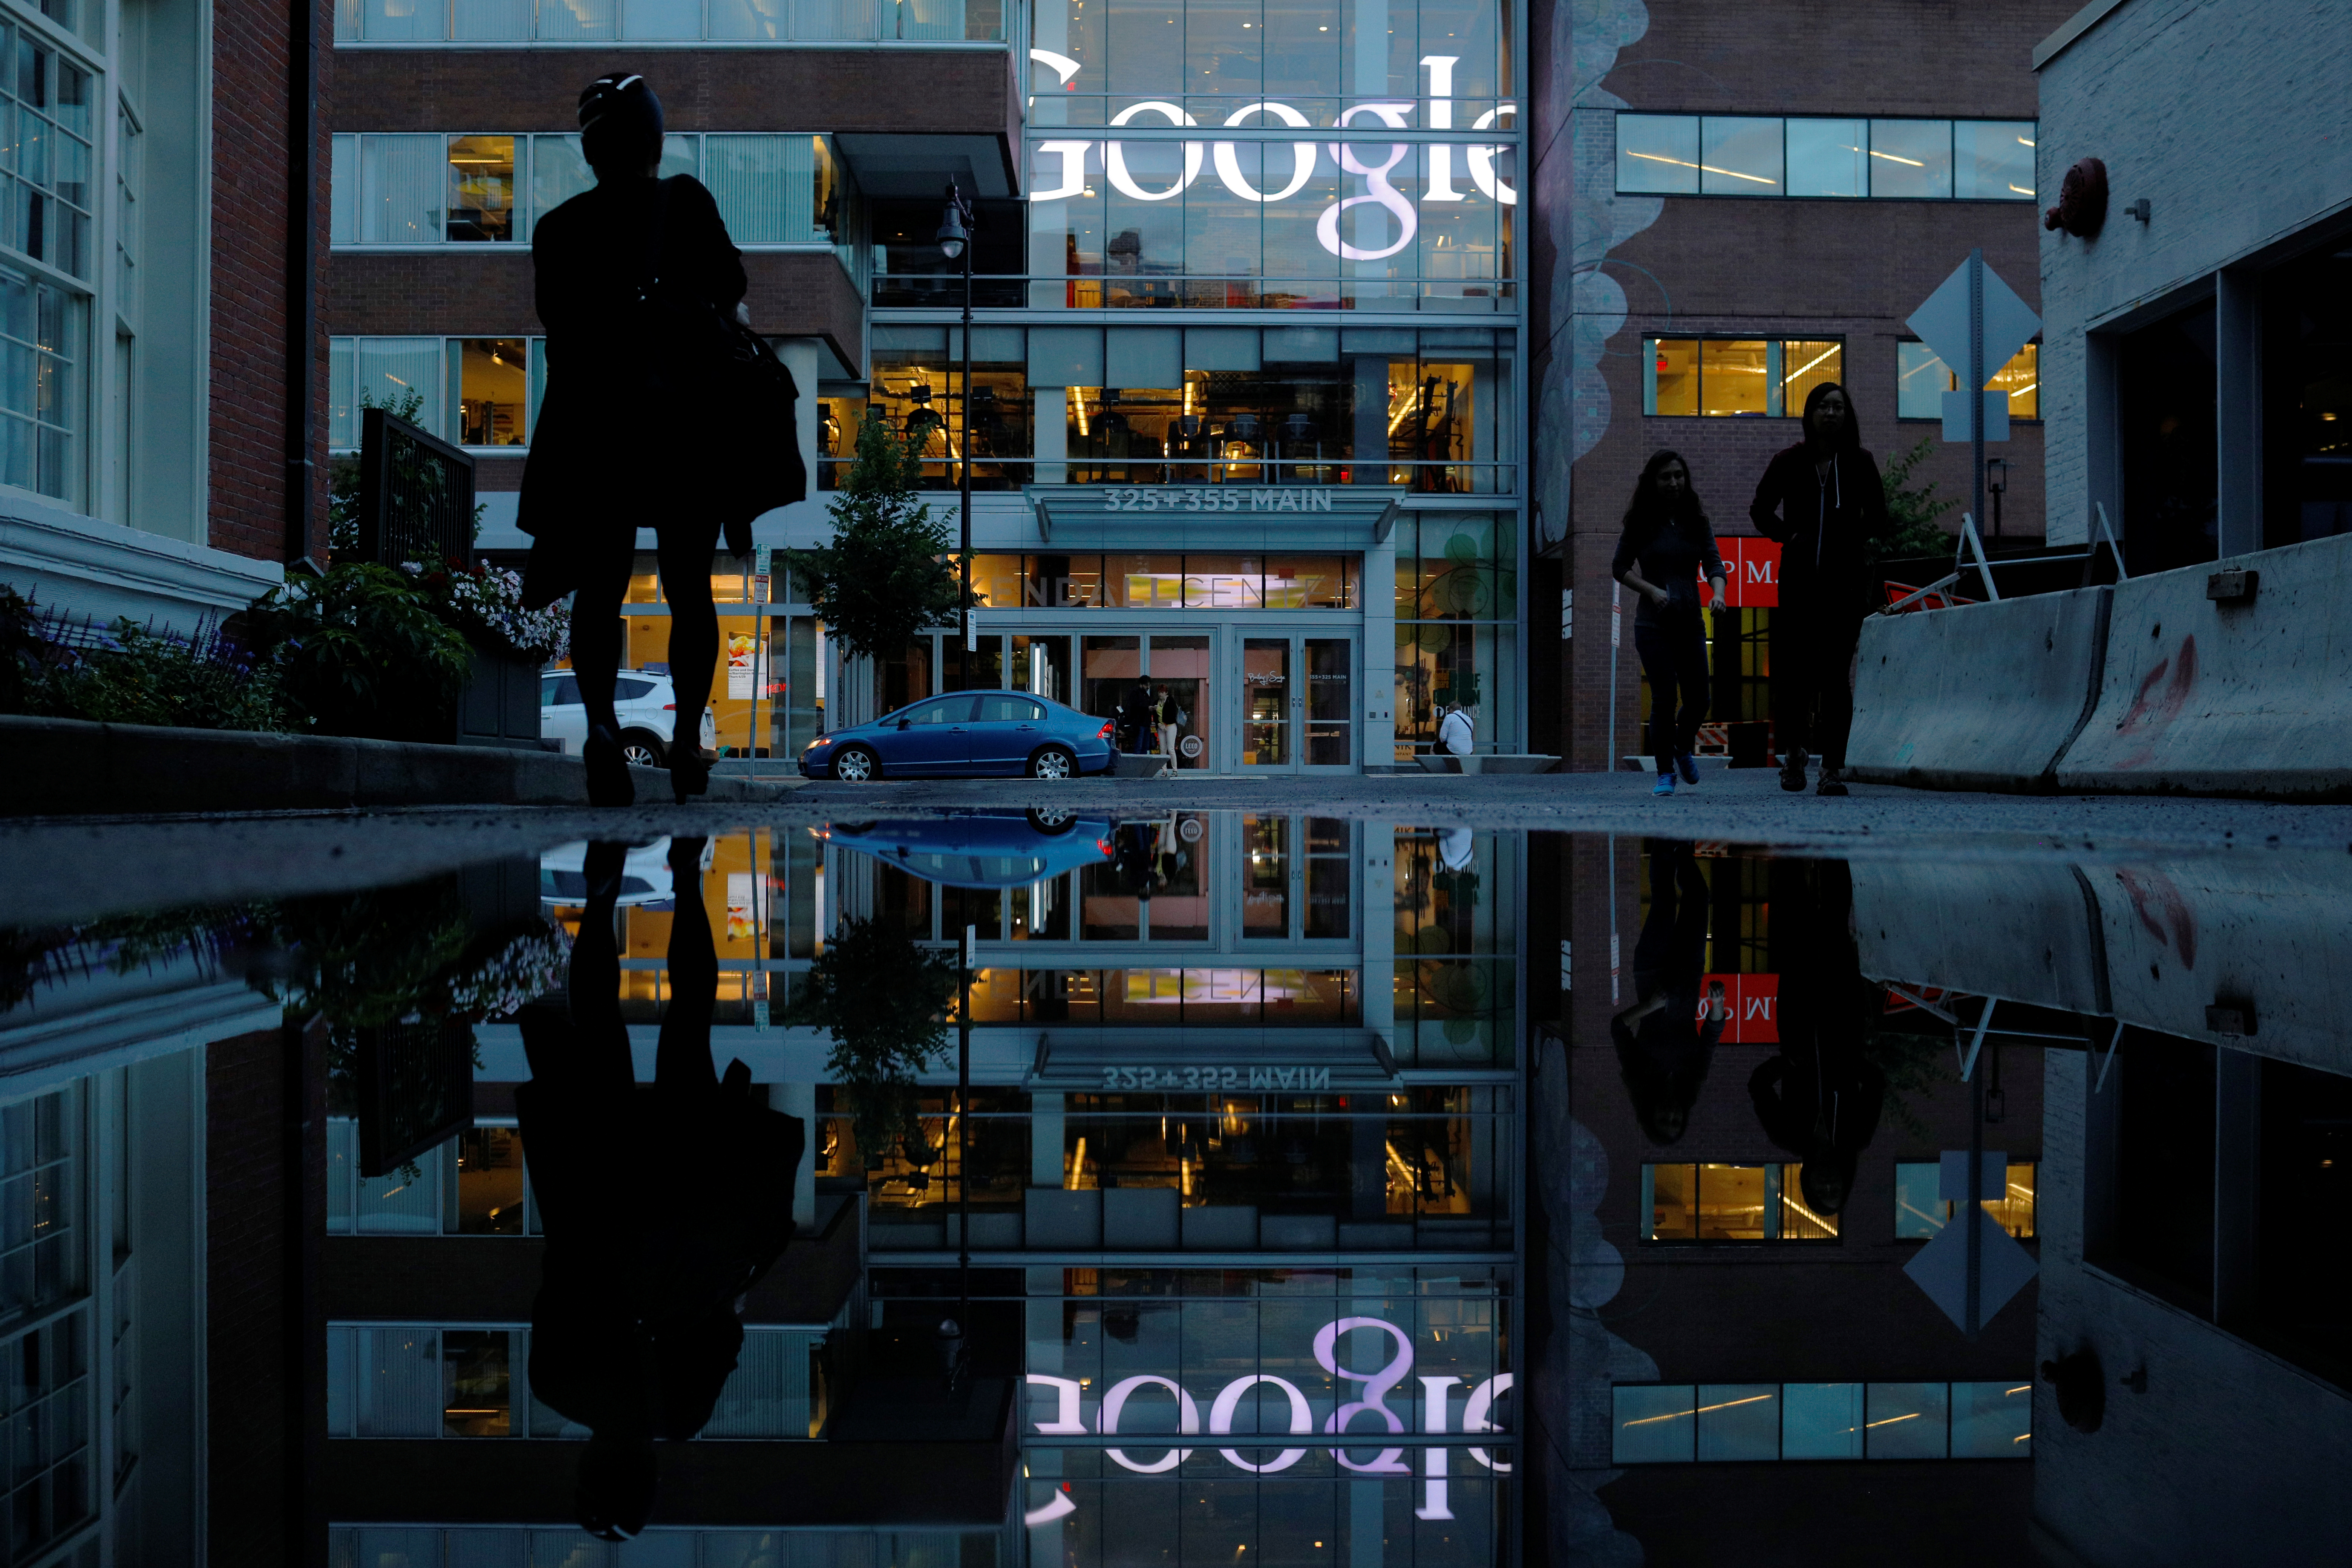 The Google sign is reflected in a rain puddle outside their offices.